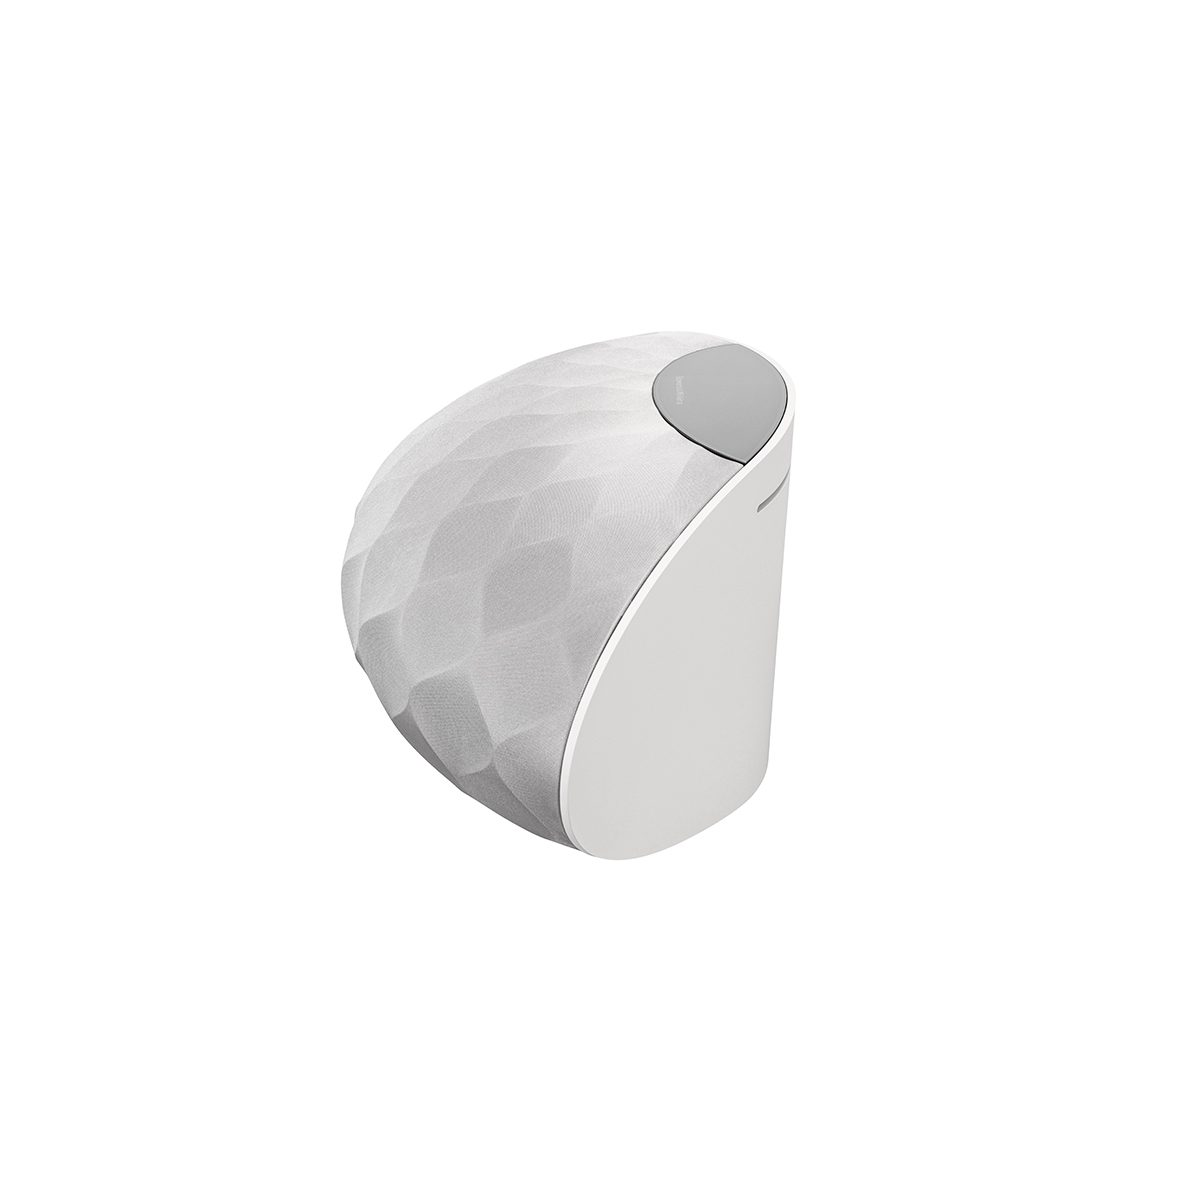 sin título 2 0001 formation wedge white right side view